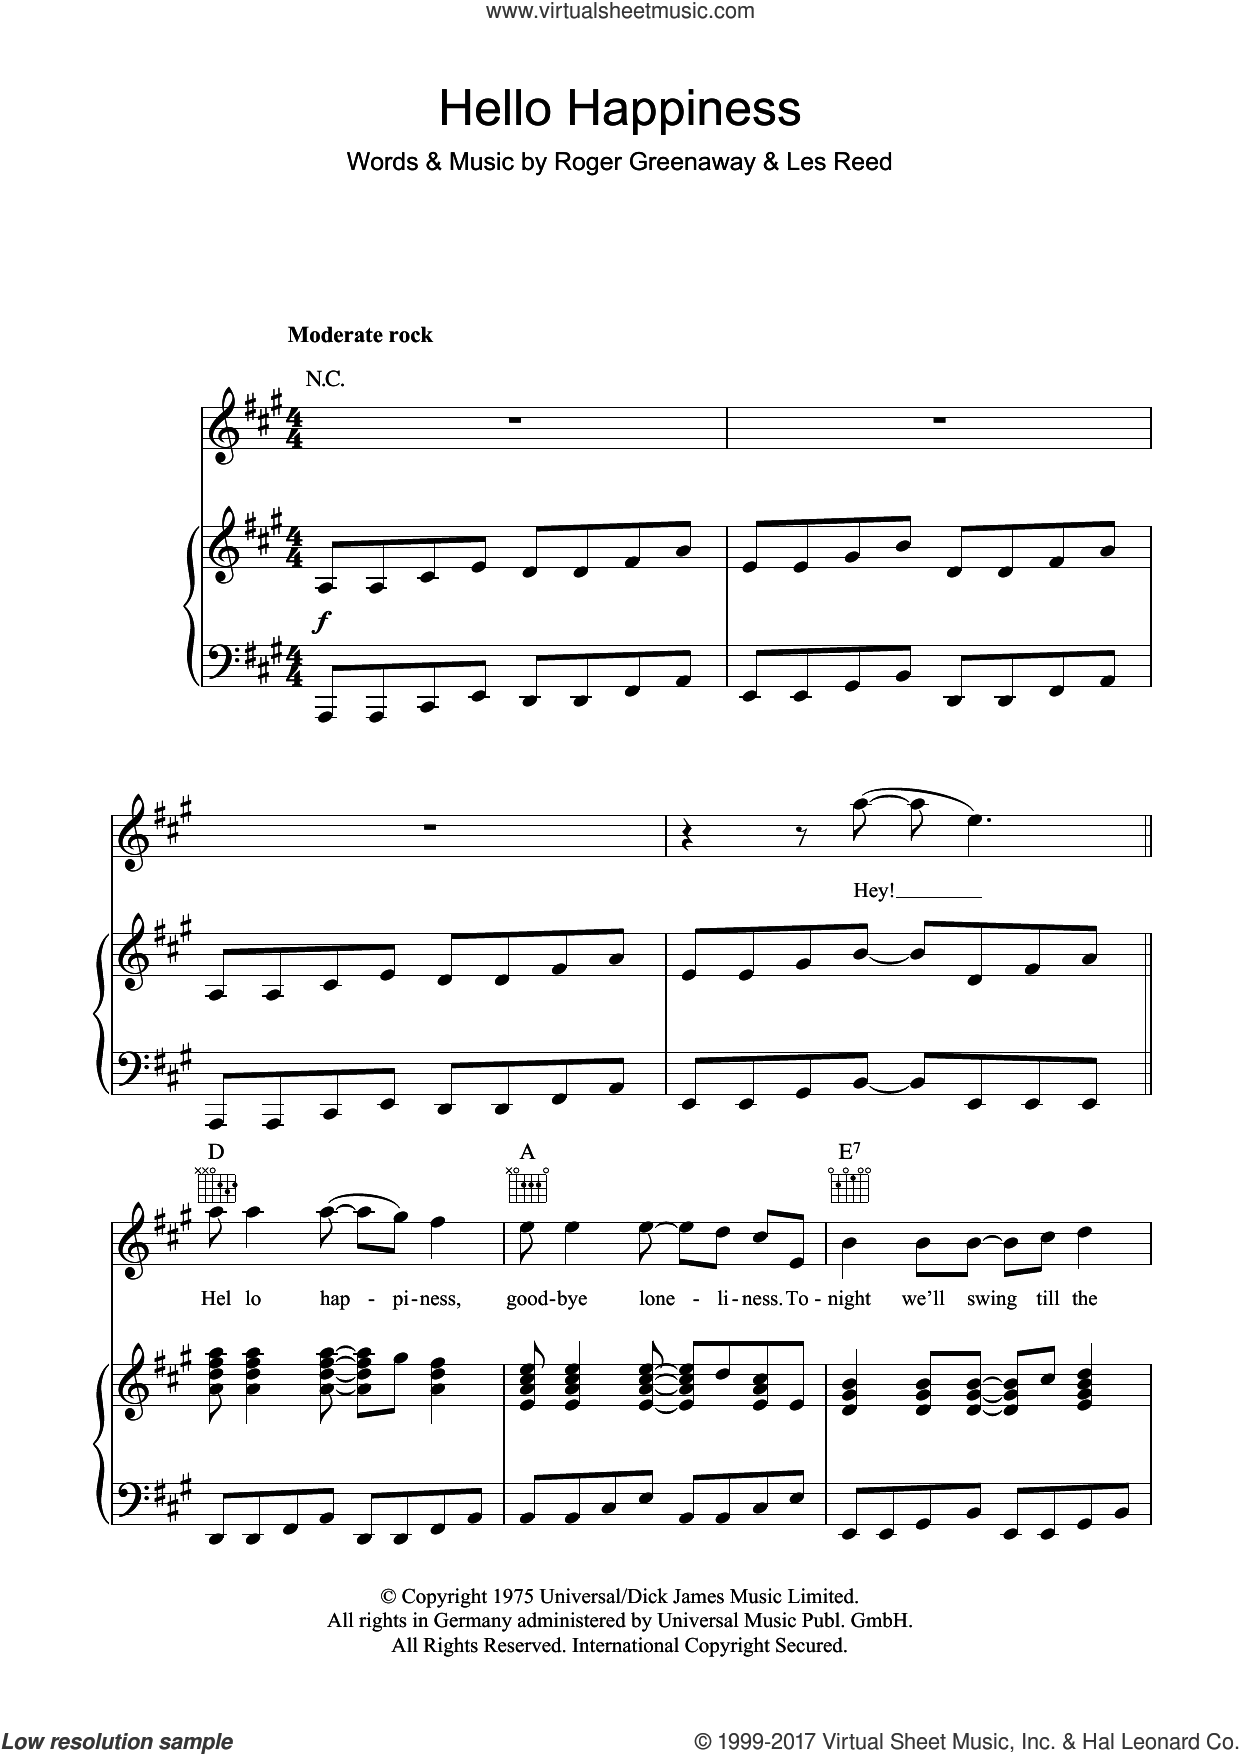 Hello Happiness sheet music for voice, piano or guitar by The Drifters, Les Reed and Roger Greenaway, intermediate. Score Image Preview.